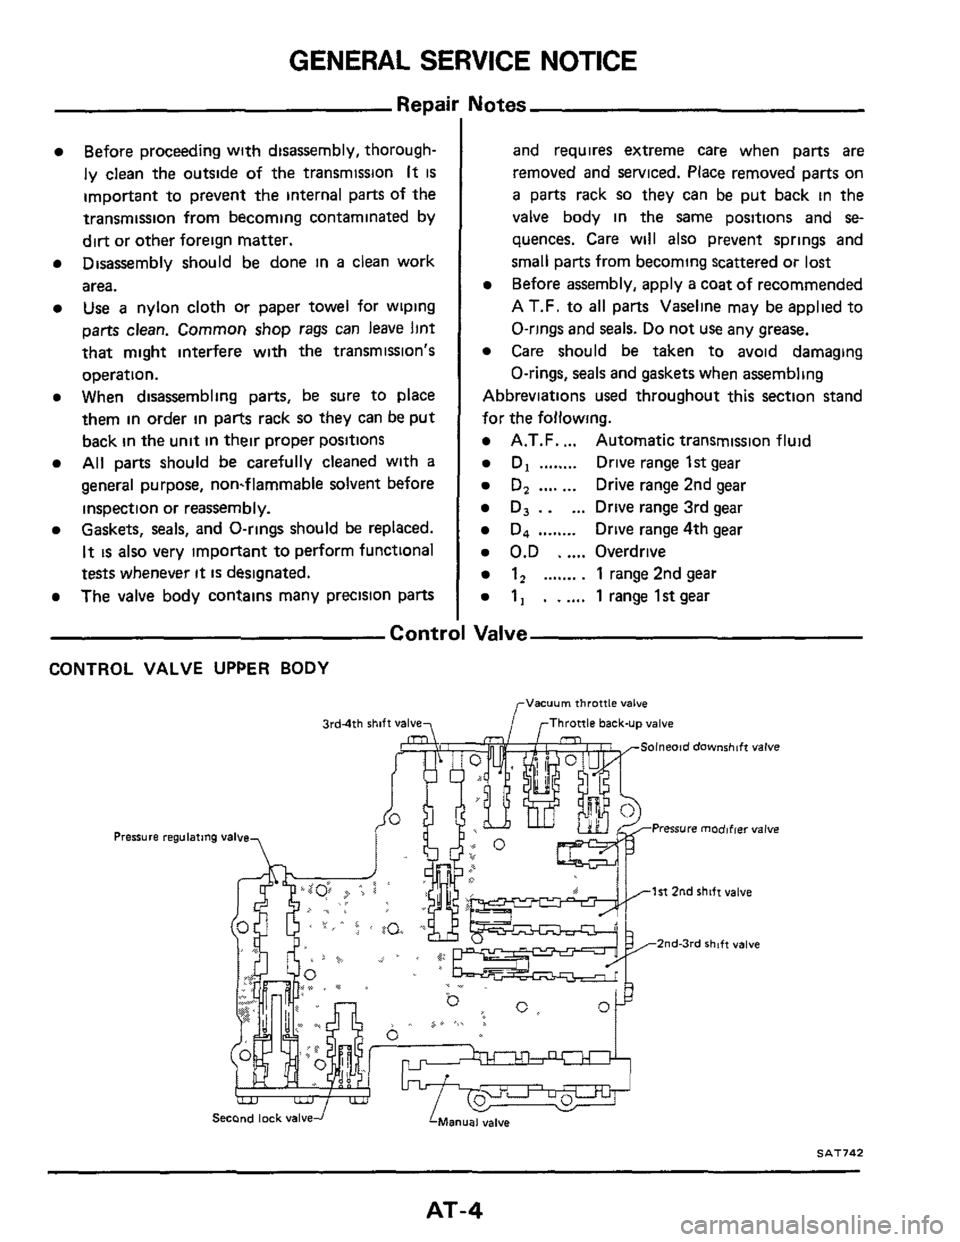 NISSAN 300ZX 1984 Z31 Automatic Transmission Workshop Manual, Page 4